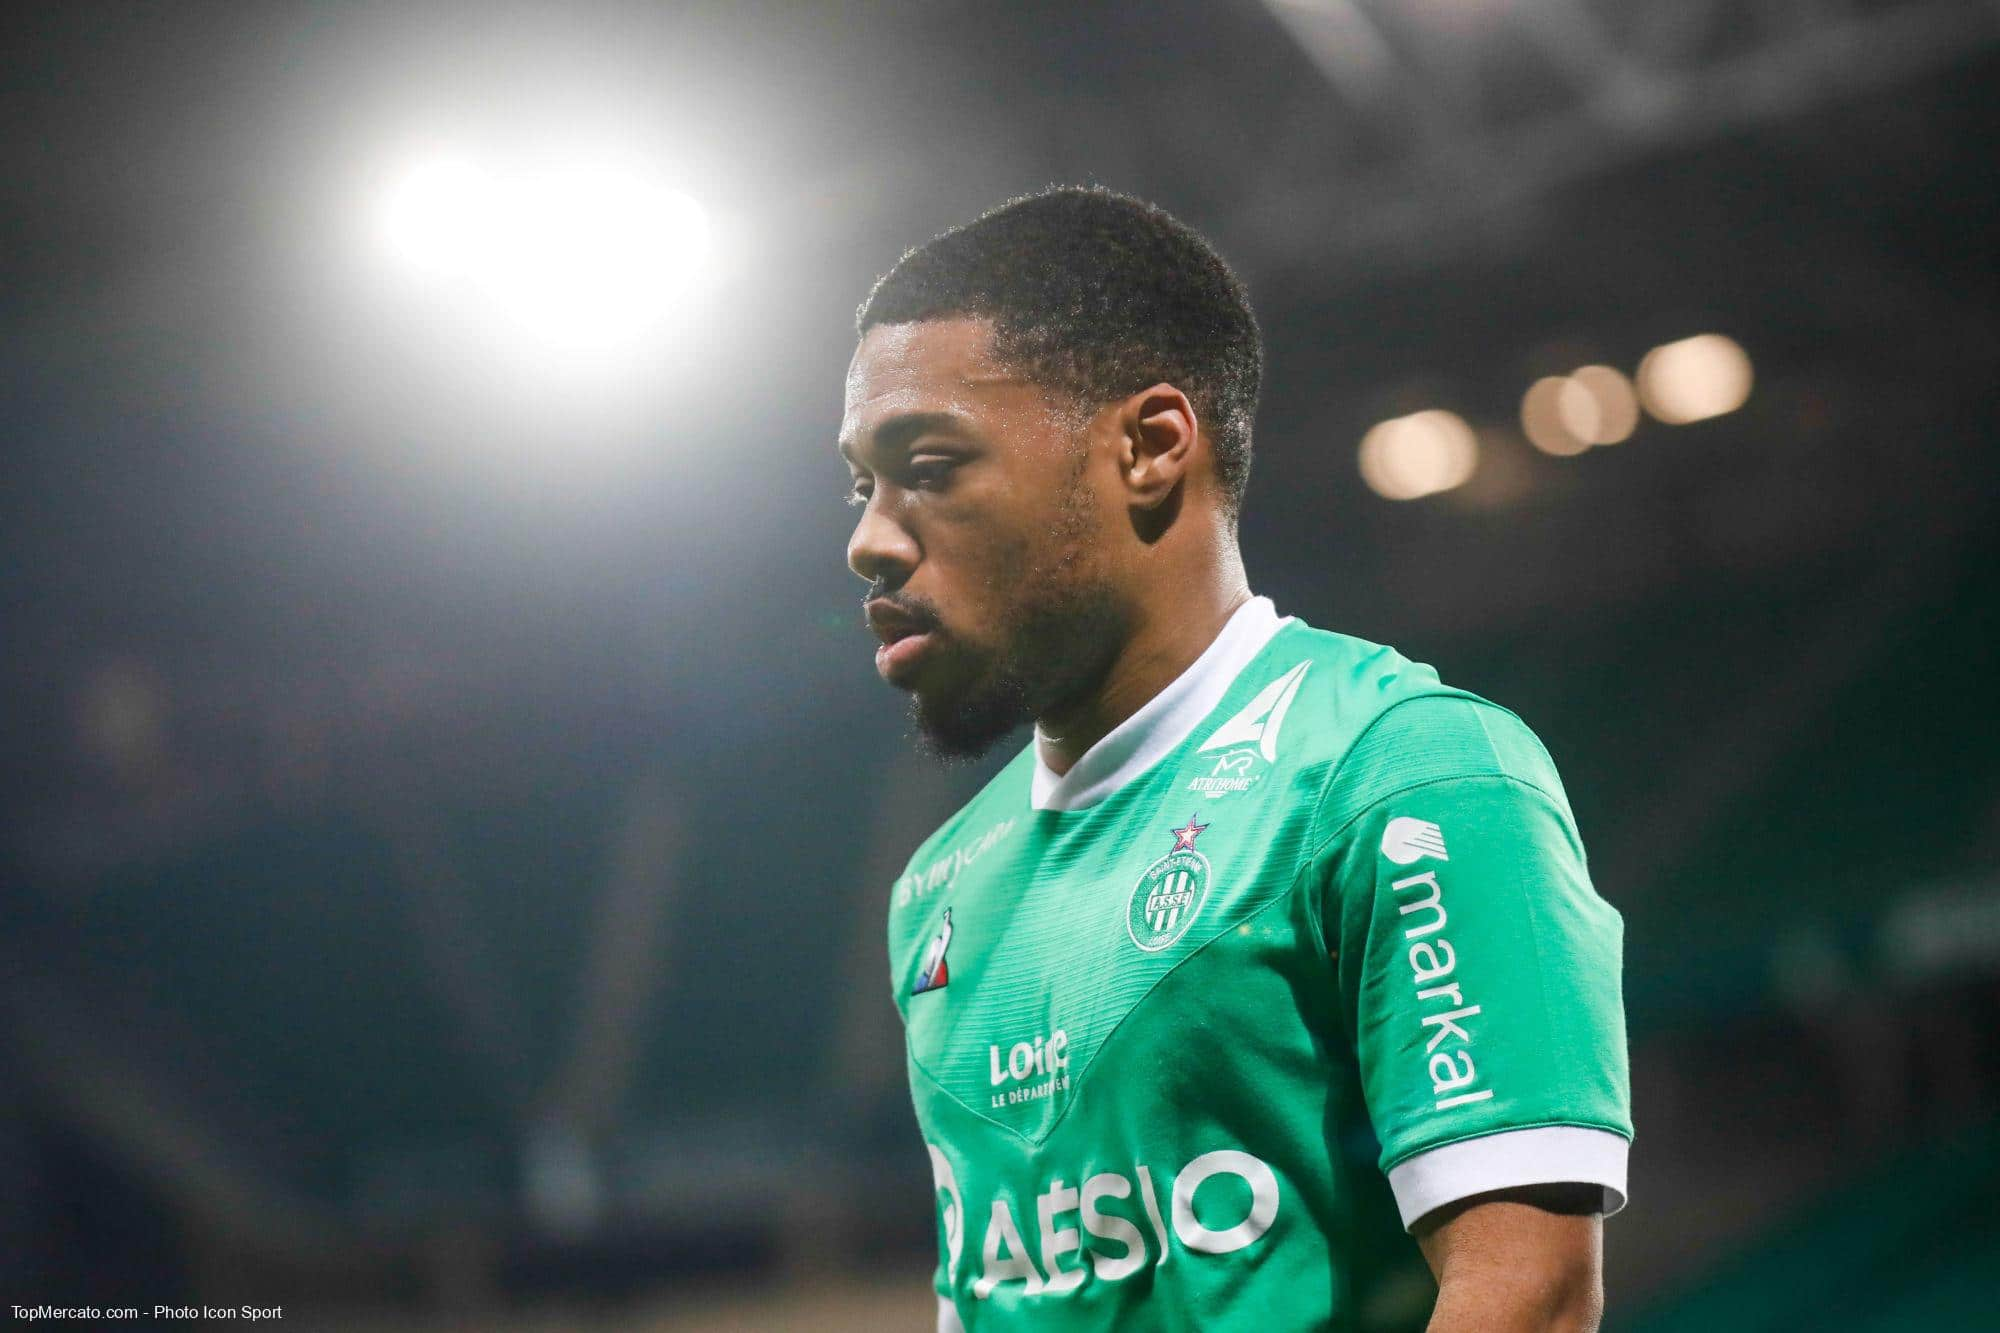 Arnaud Nordin, AS Saint-Etienne